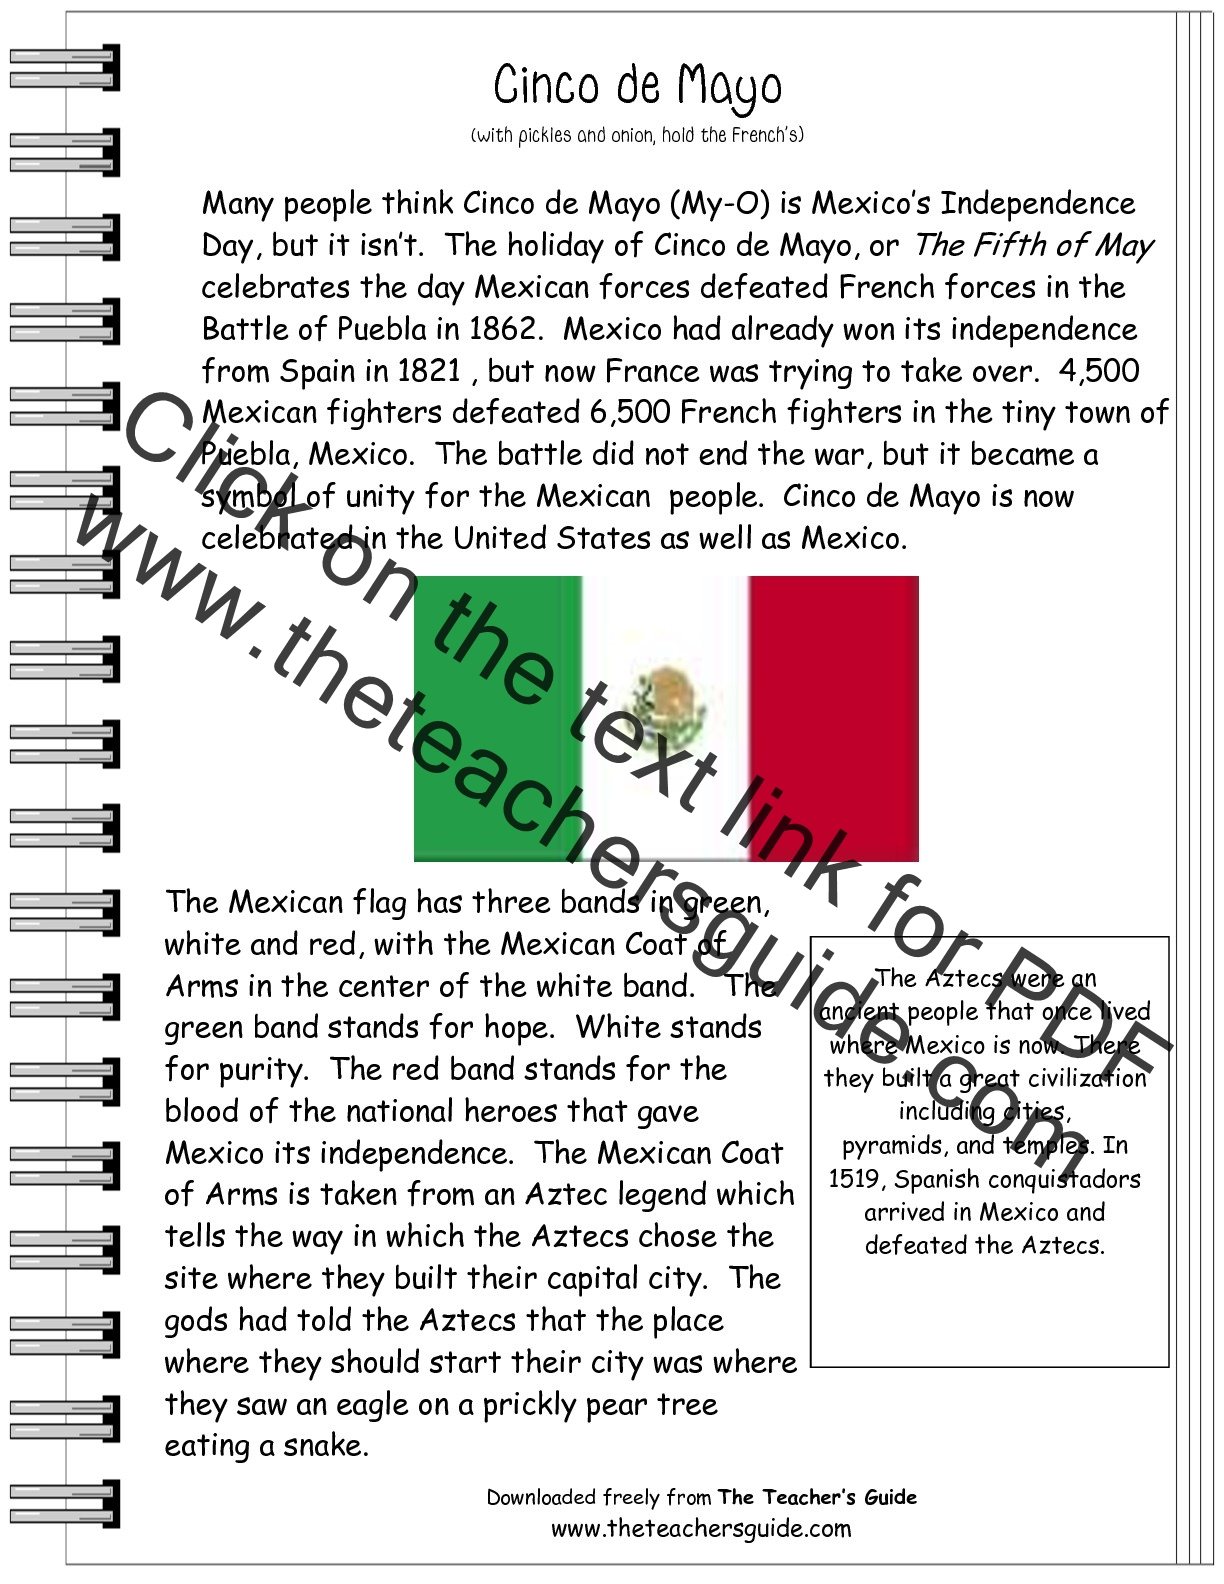 Informational Text Worksheets And Printouts From The